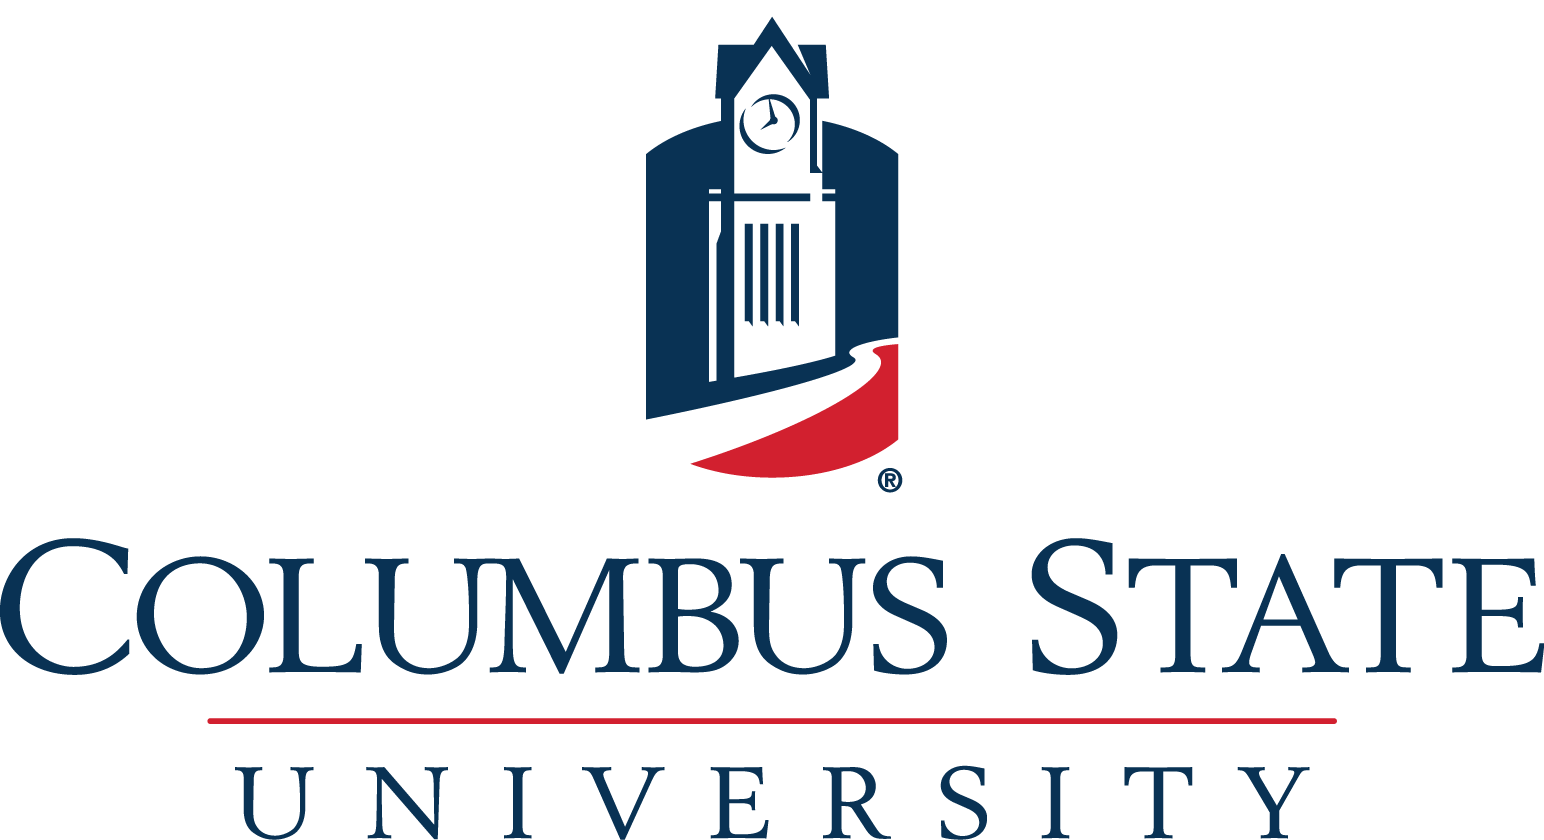 Visit the website of Columbus State University